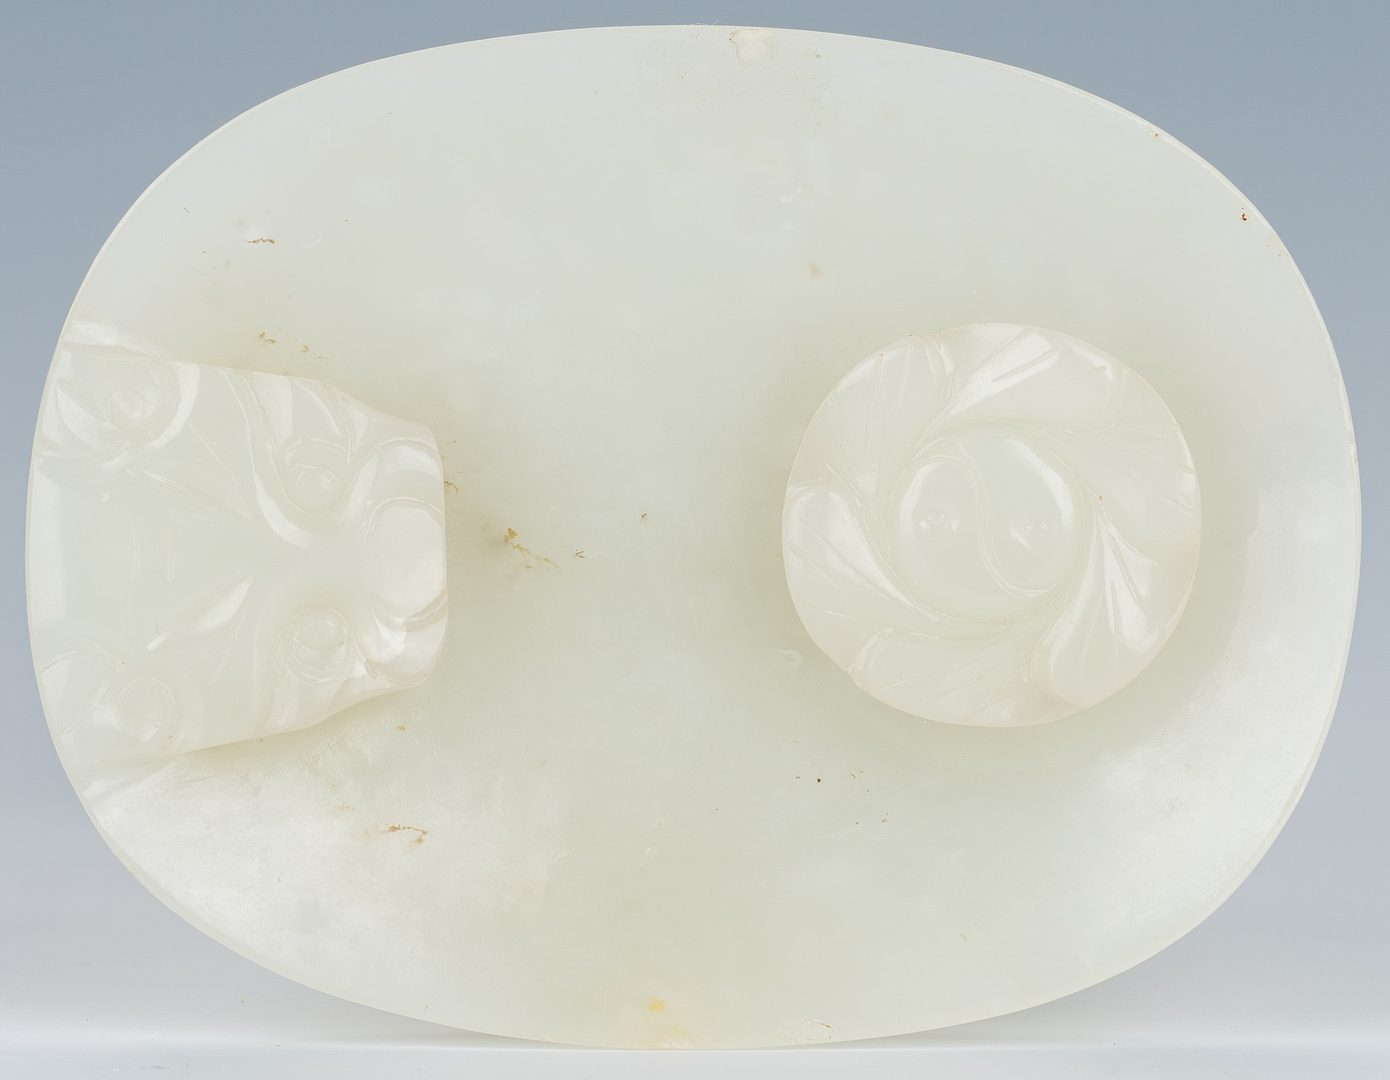 Lot 2: Carved Oval Chinese White Jade Buckle